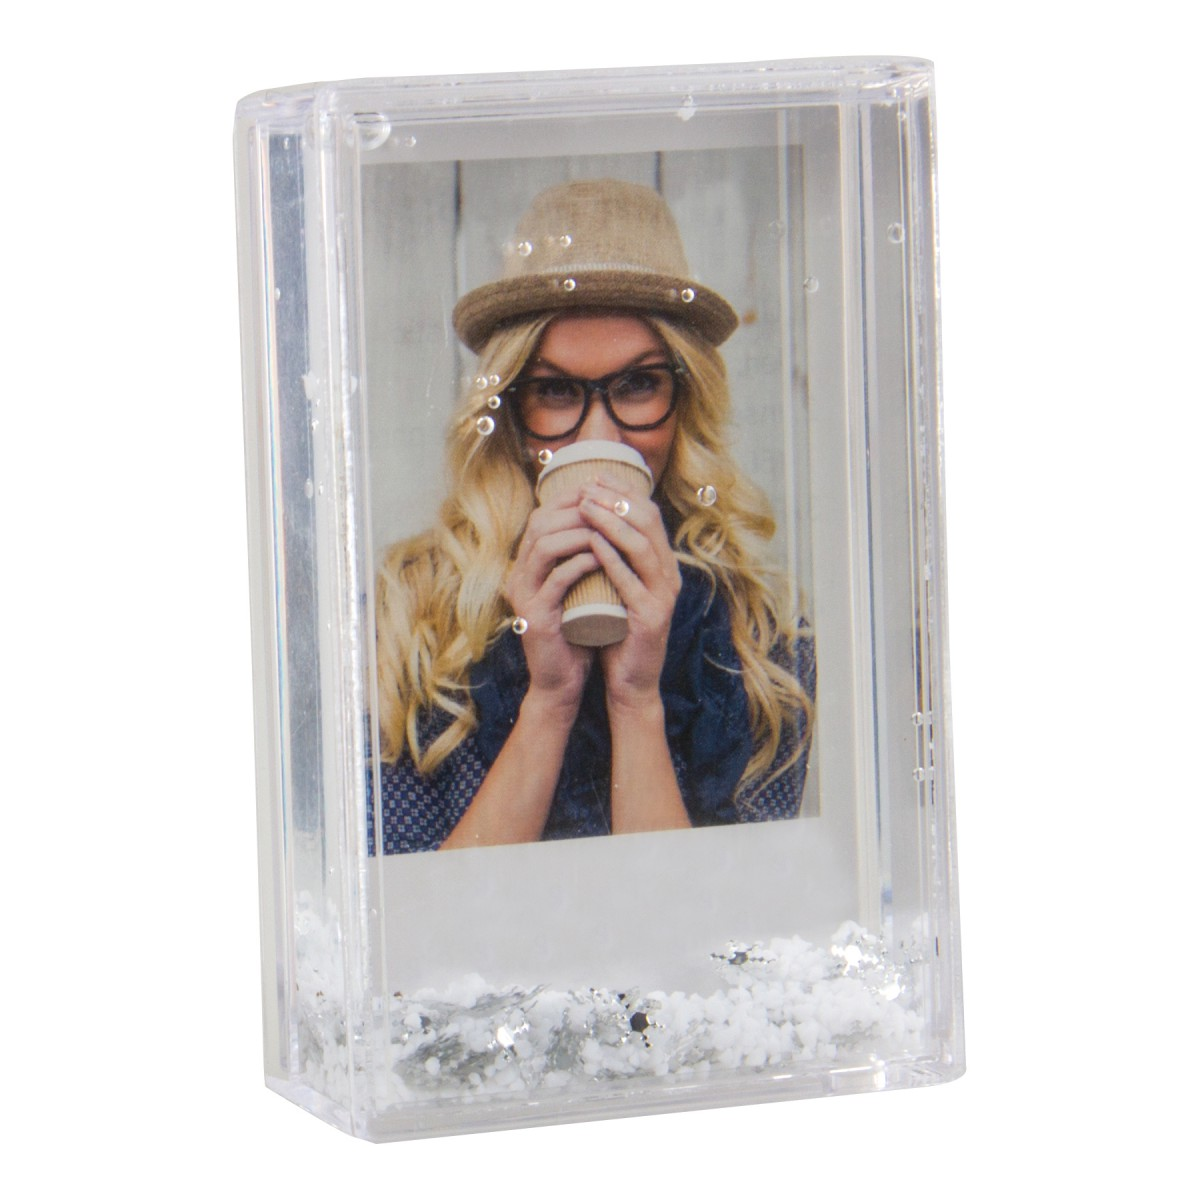 Wholesale Instax Picture Frames With Snow For Fujifilm